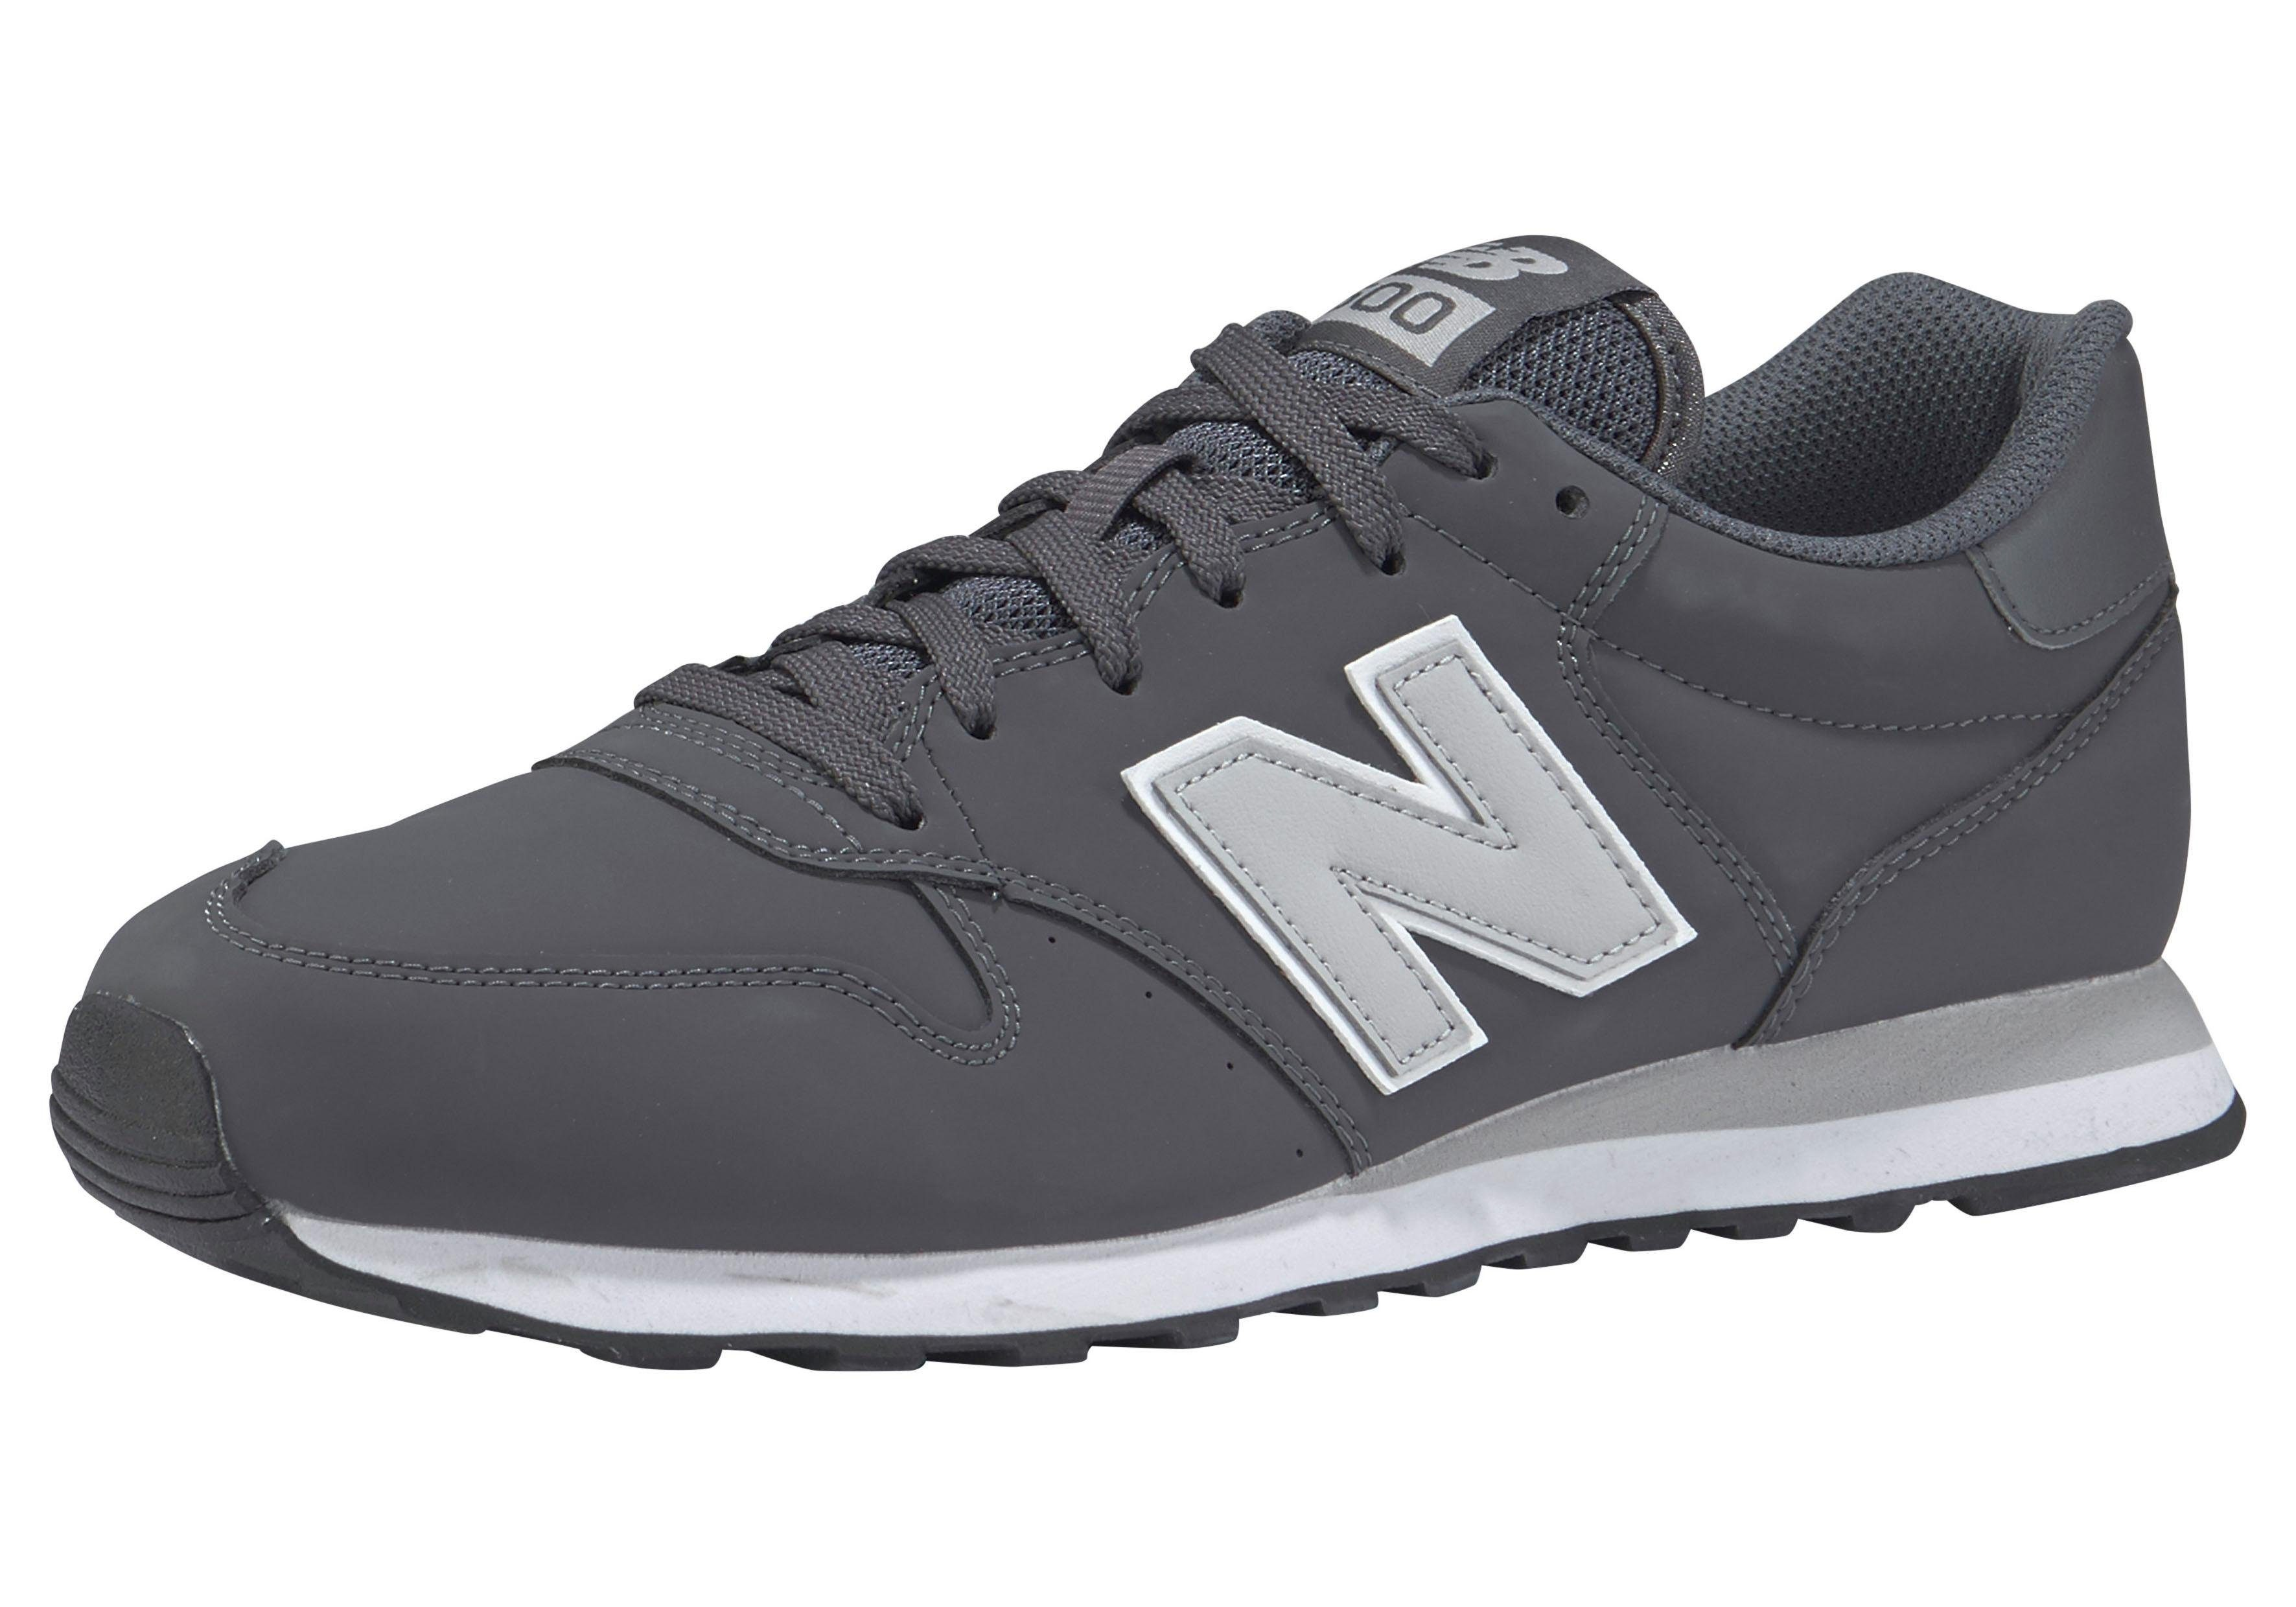 New Balance »GM 500« Sneaker, Strapazierfähiges Obermaterial aus Synthetik online kaufen | OTTO